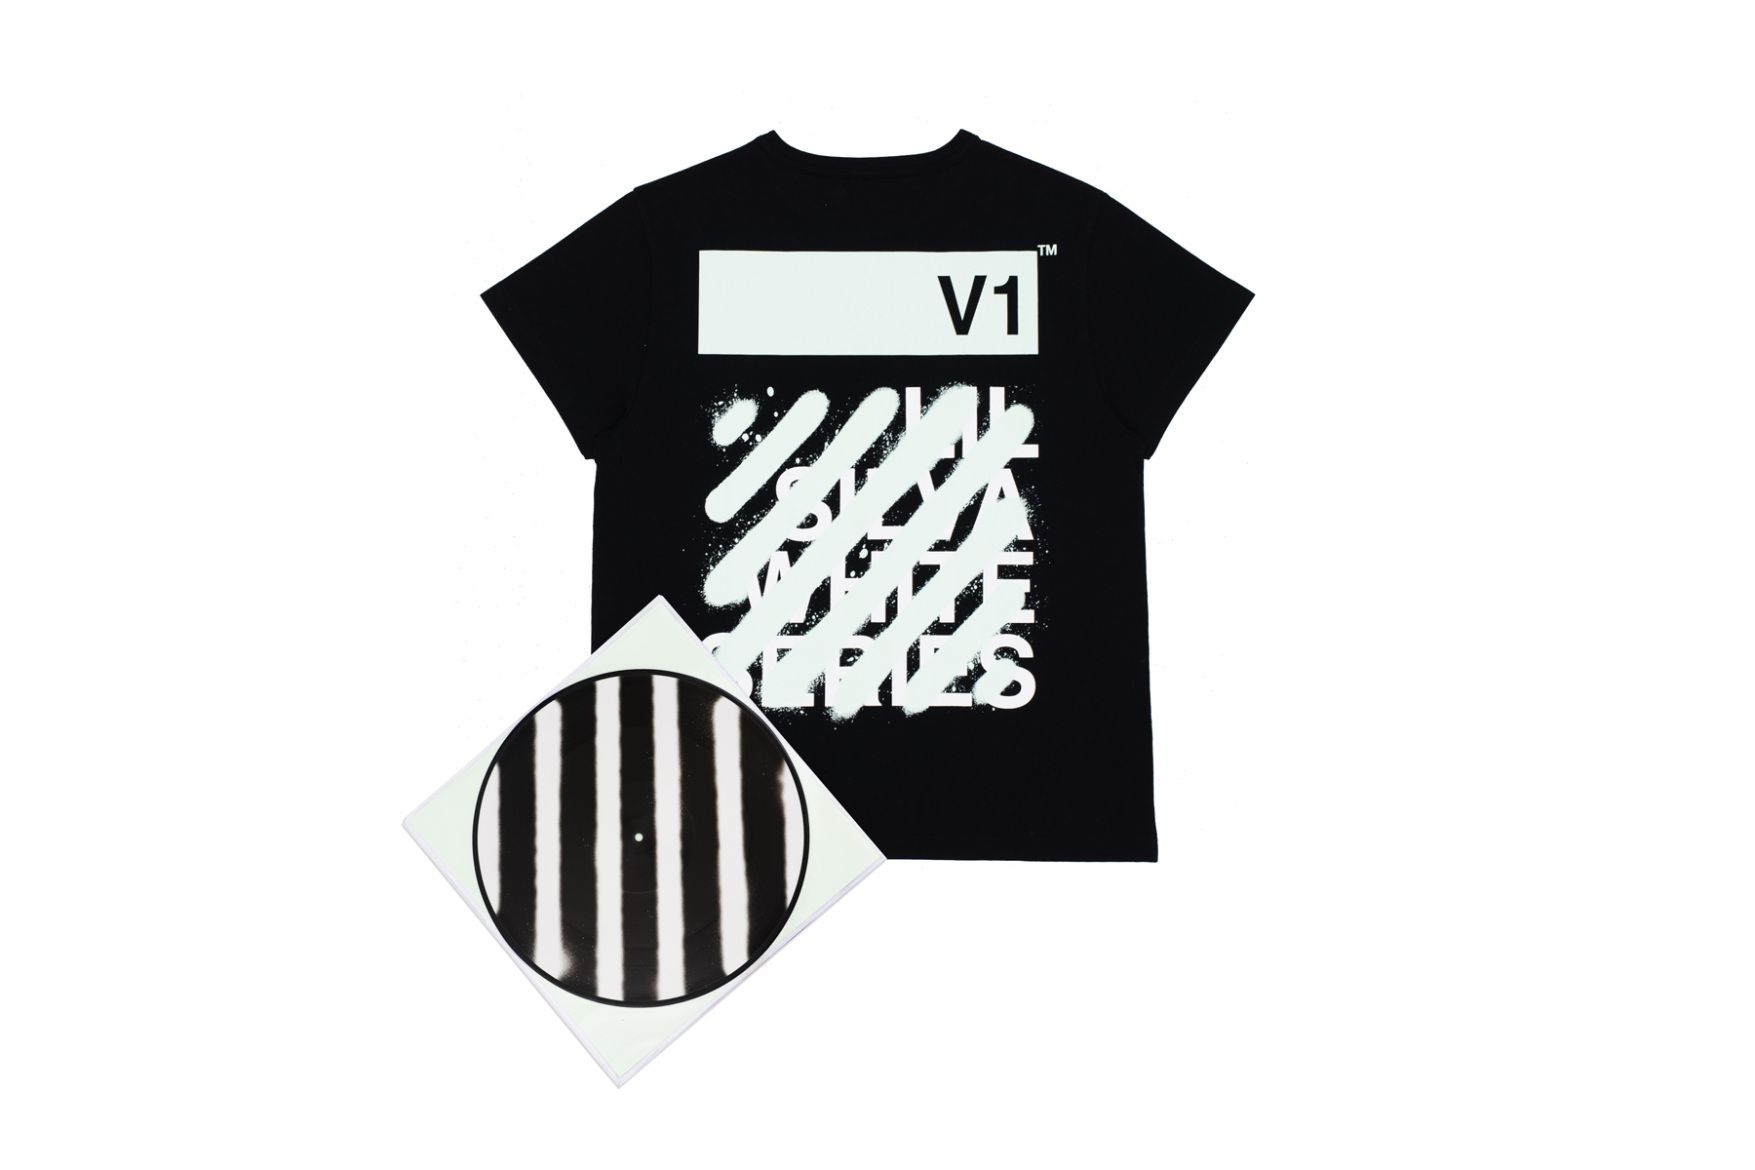 67fc2786f4e28e OFF-WHITE Lil Silva 2016 Fall Winter Collaboration Vinyl Music T-shirt Tees  Virgil Abloh